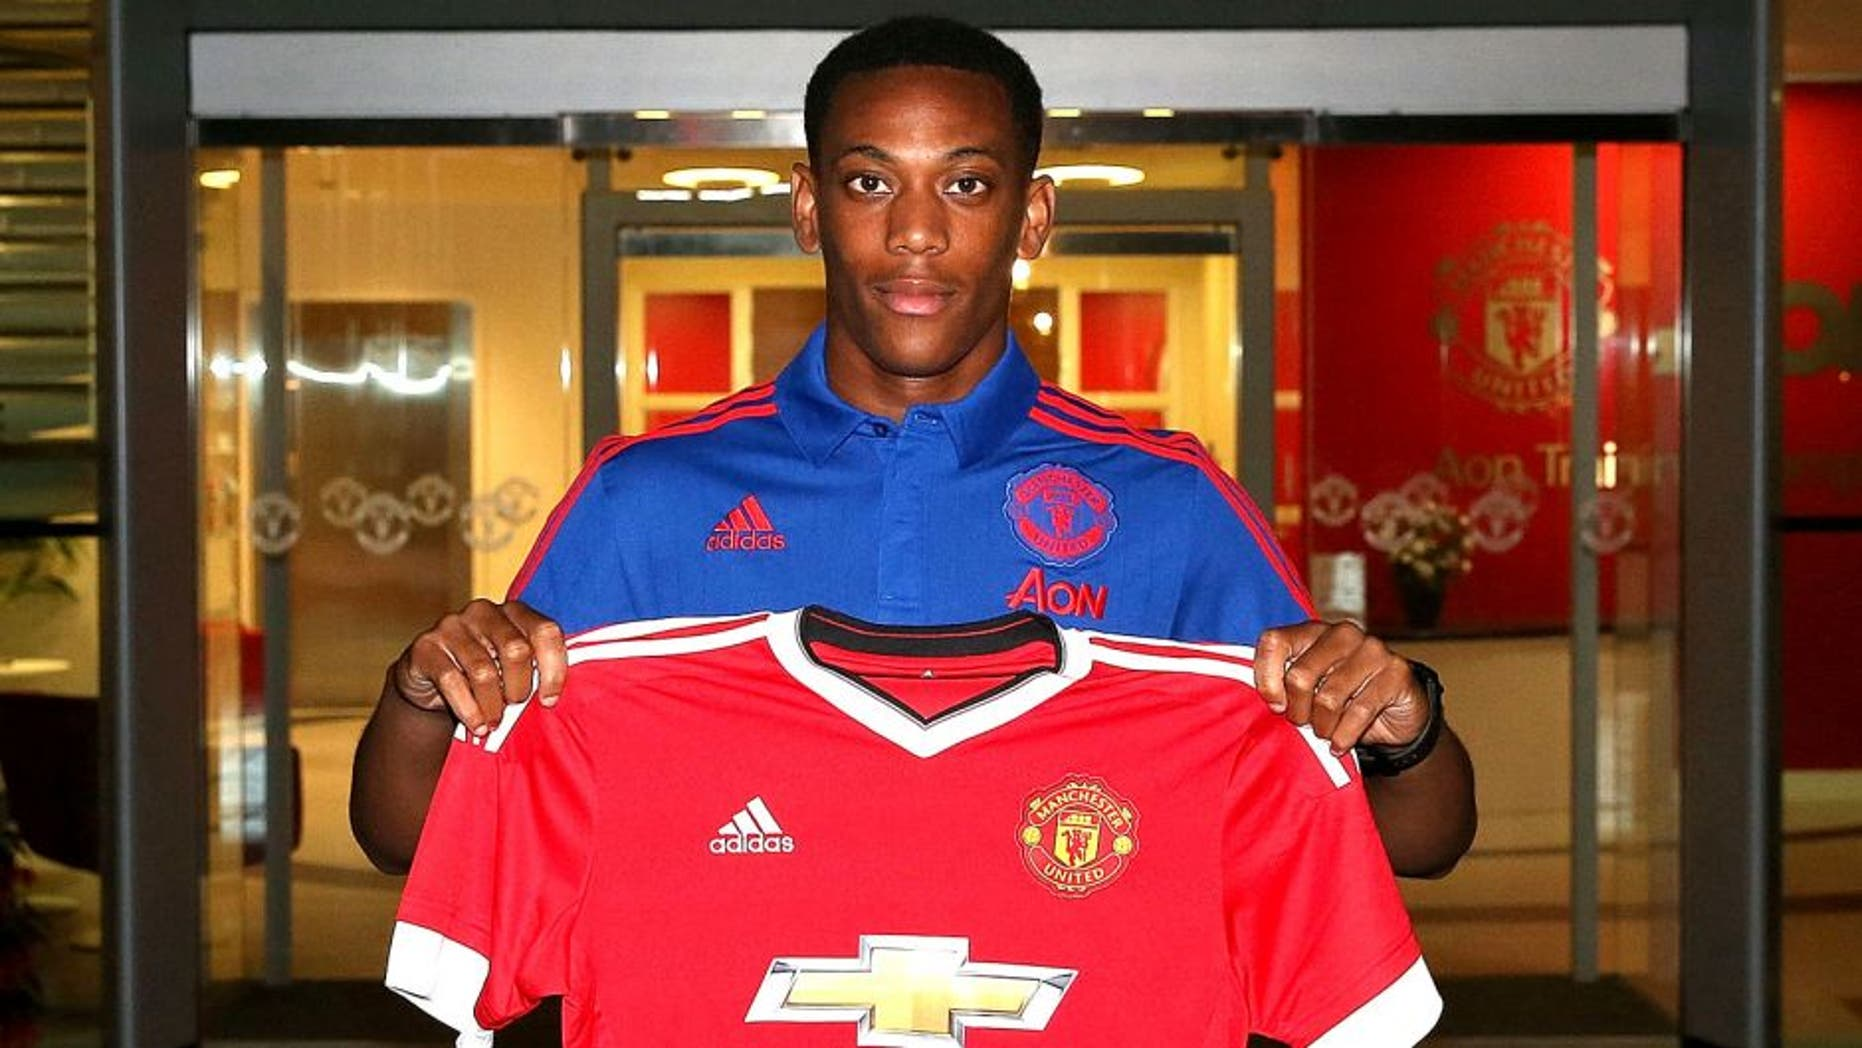 MANCHESTER, ENGLAND - SEPTEMBER 01: (EXCLUSIVE COVERAGE) (MINIMUM FEES APPLY - 150 GBP PRINT AND ON AIR & 75 GBP ONLINE OR LOCAL EQUIVALENT, PER IMAGE) Manchester United unveil new signing Anthony Martial at Aon Training Complex on September 1, 2015 in Manchester, England. (Photo by John Peters/Man Utd via Getty Images)